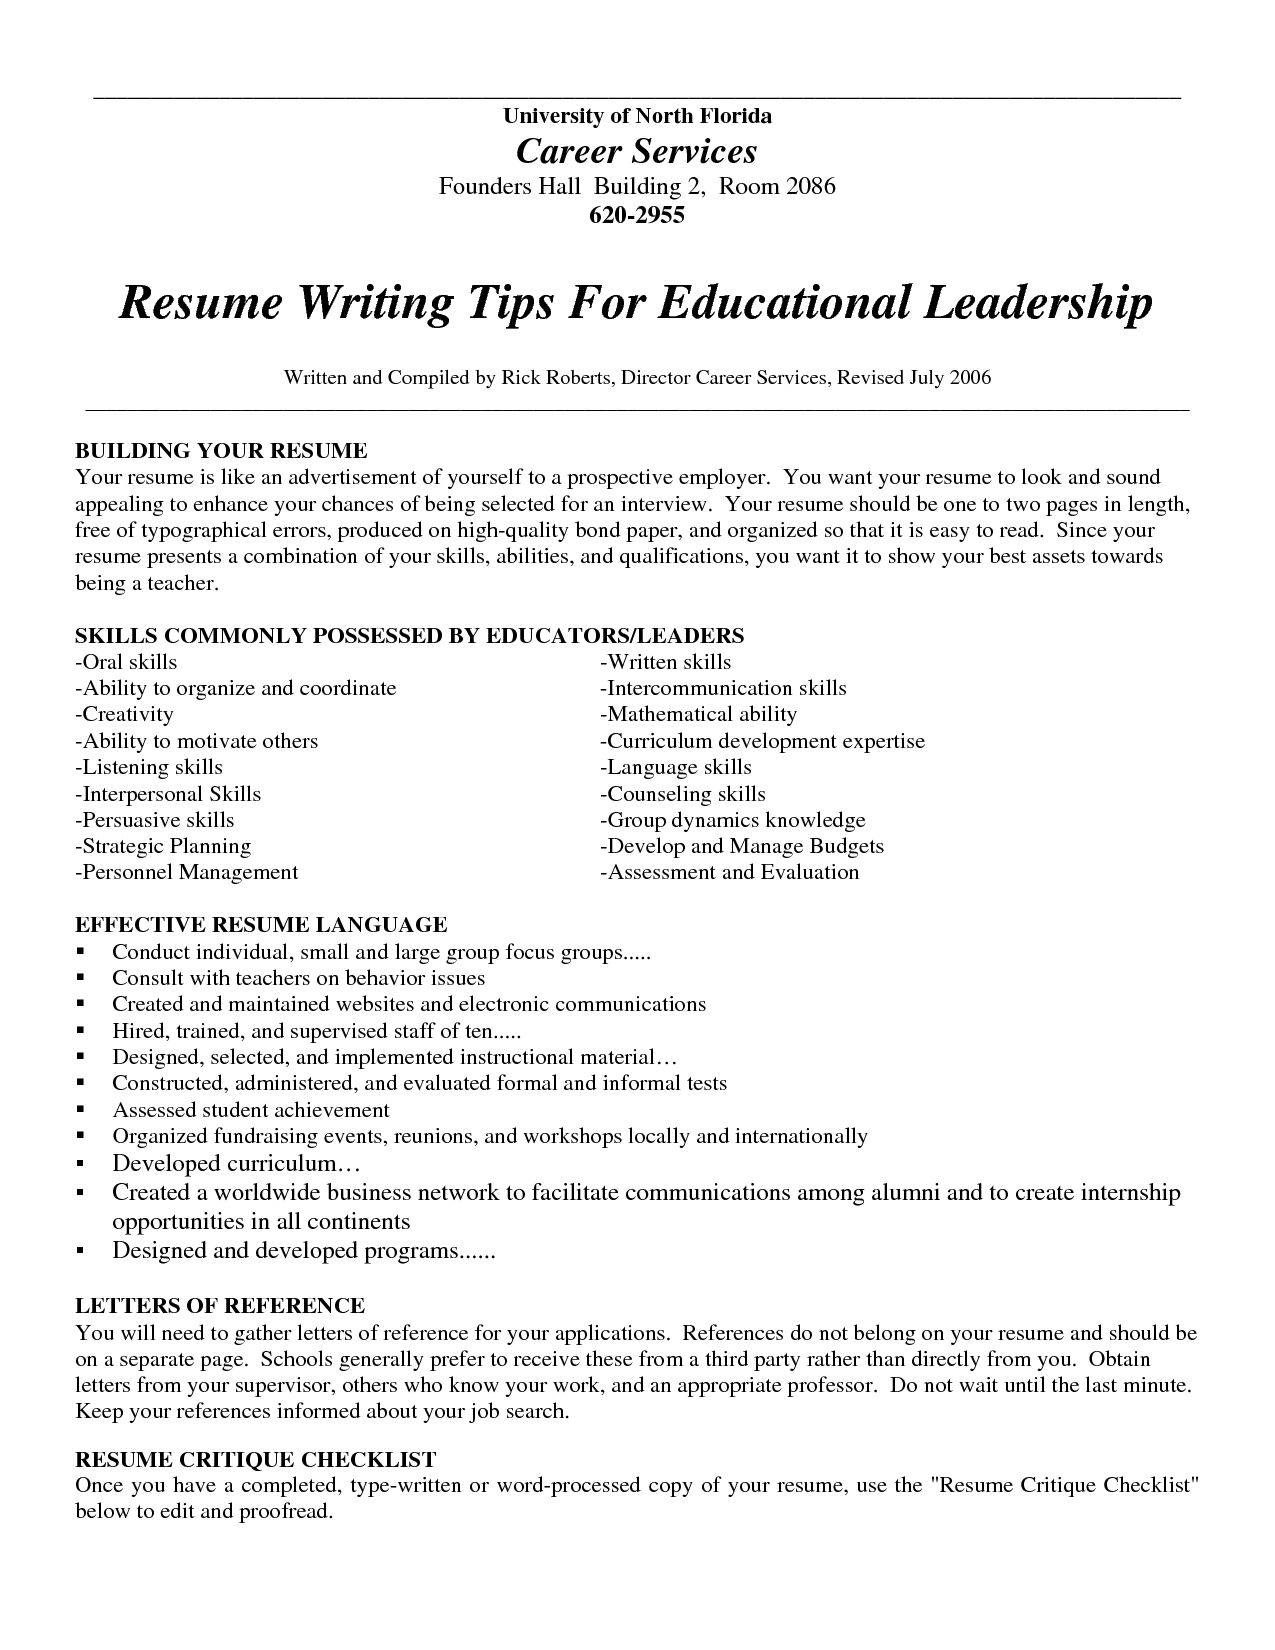 making my resume help resume building help making a resume